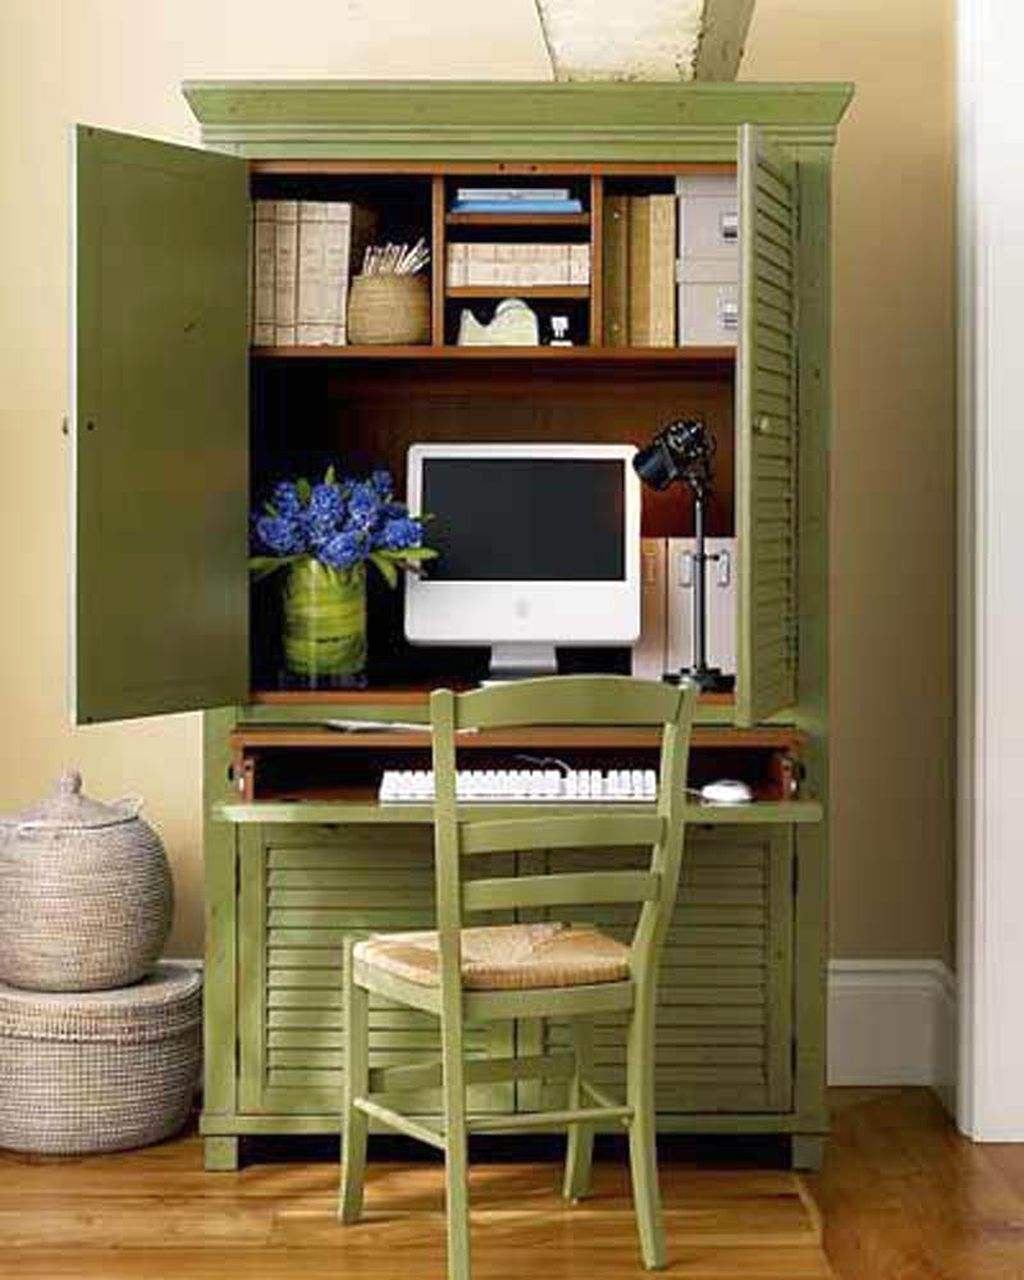 Green cupboard home office design ideas for small spaces for Small house design tips